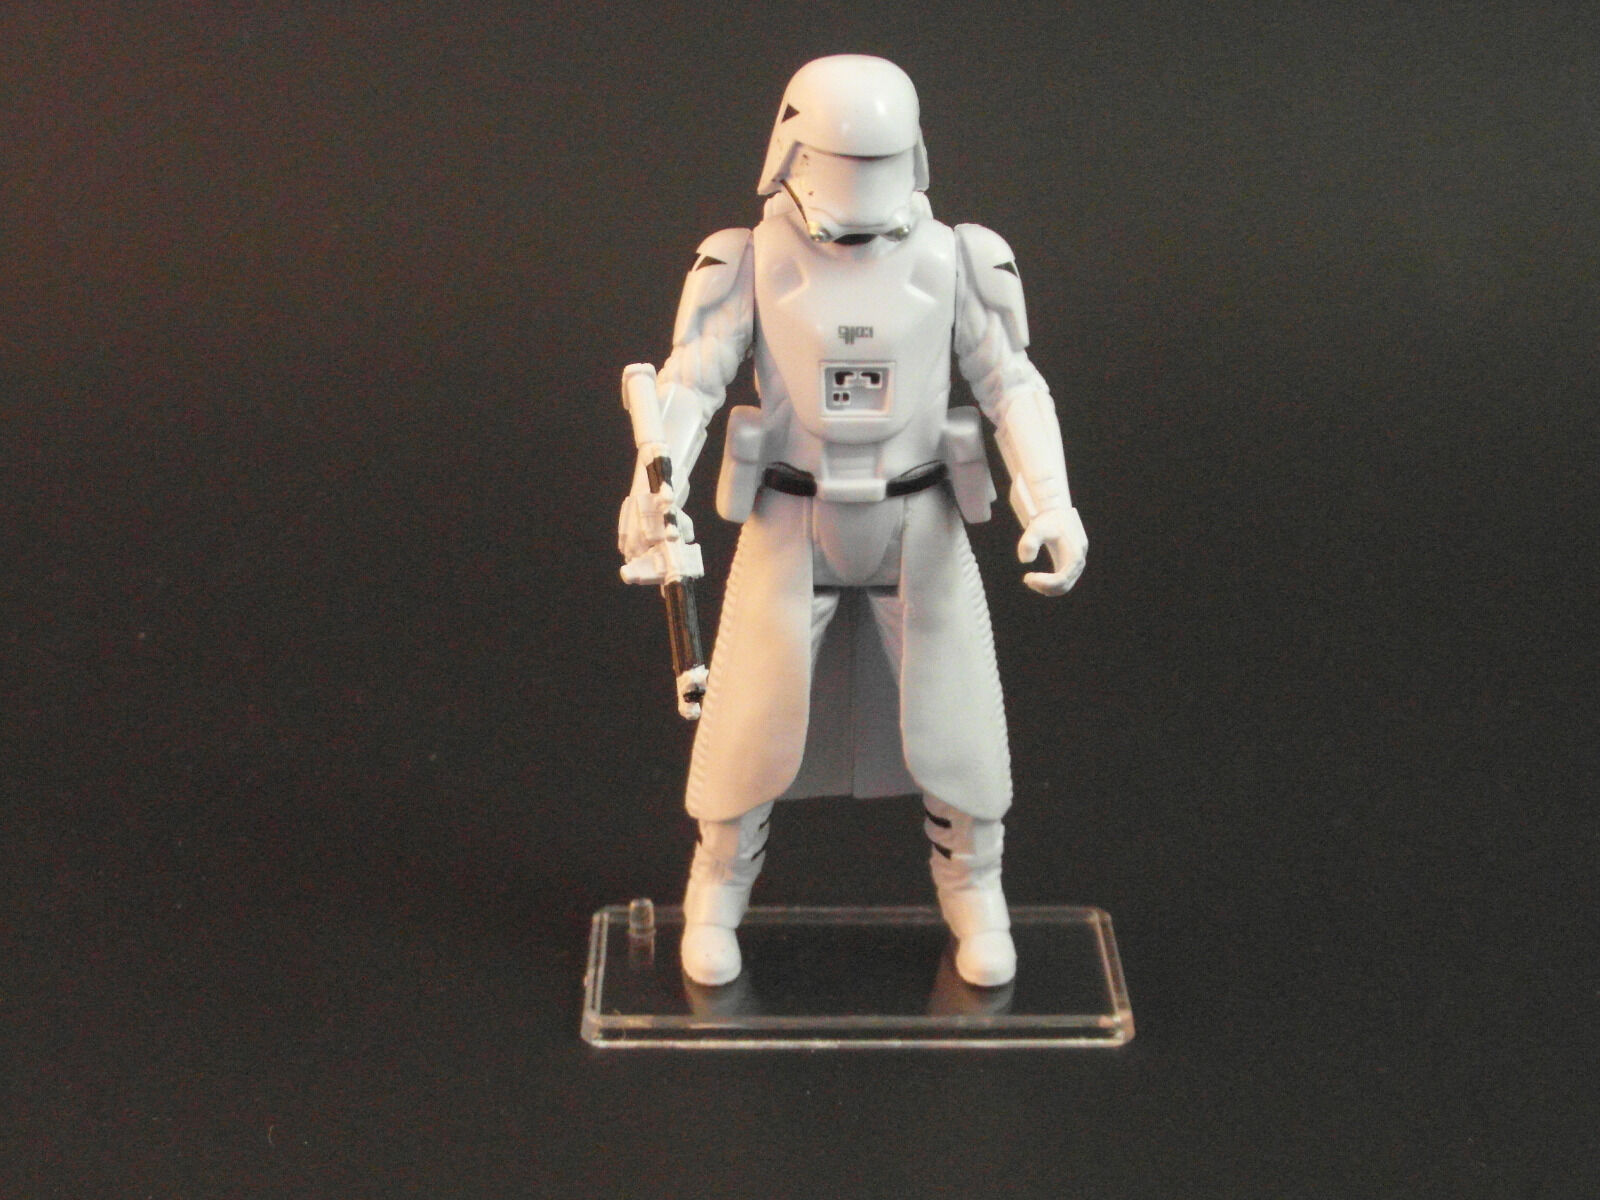 100 x Stands for 'The Force Awakens' Star Wars Action Figures - T5c